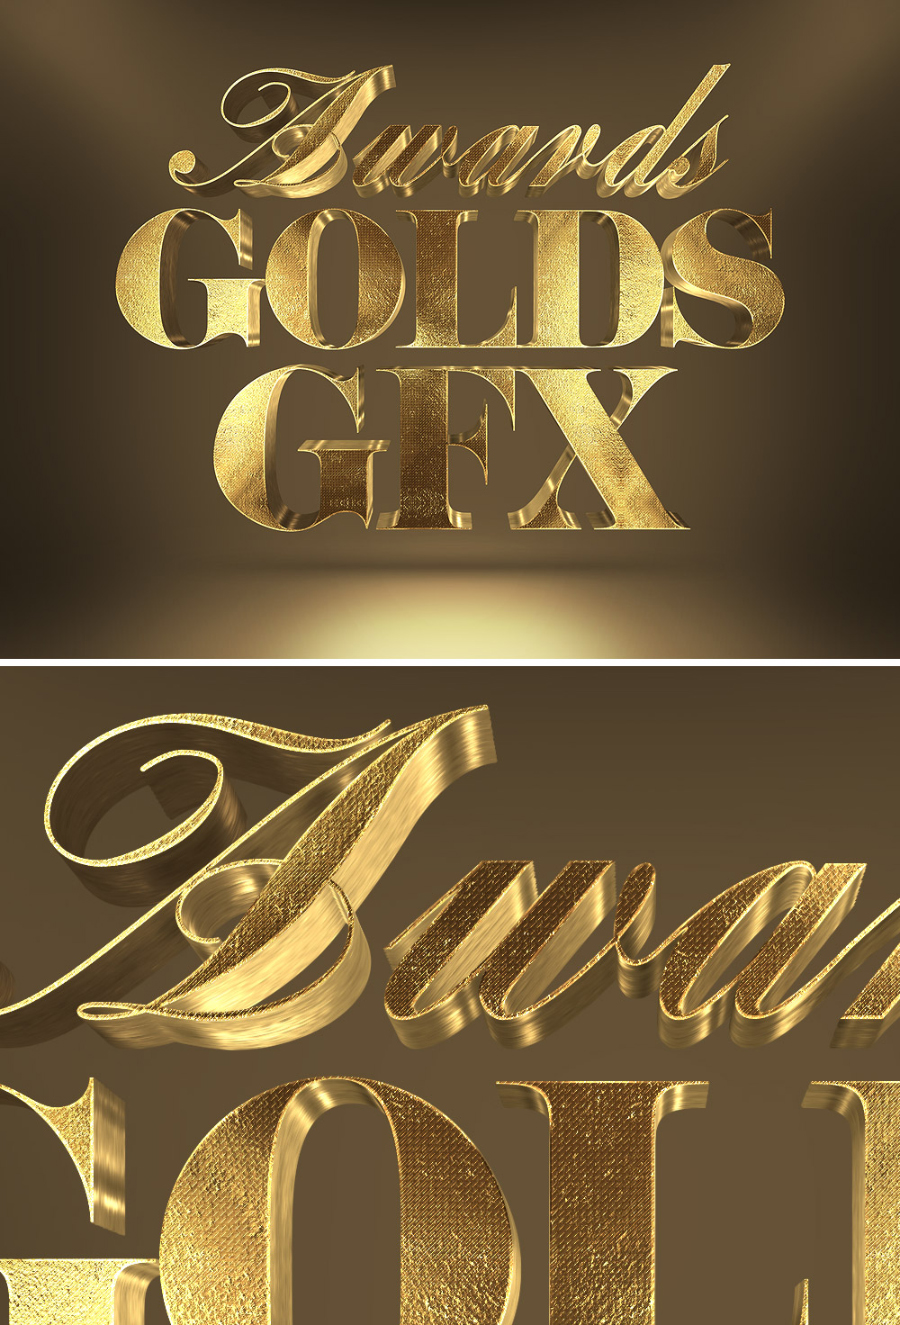 Free 3D Gold Text Effects   Freebies & Deals for Graphic